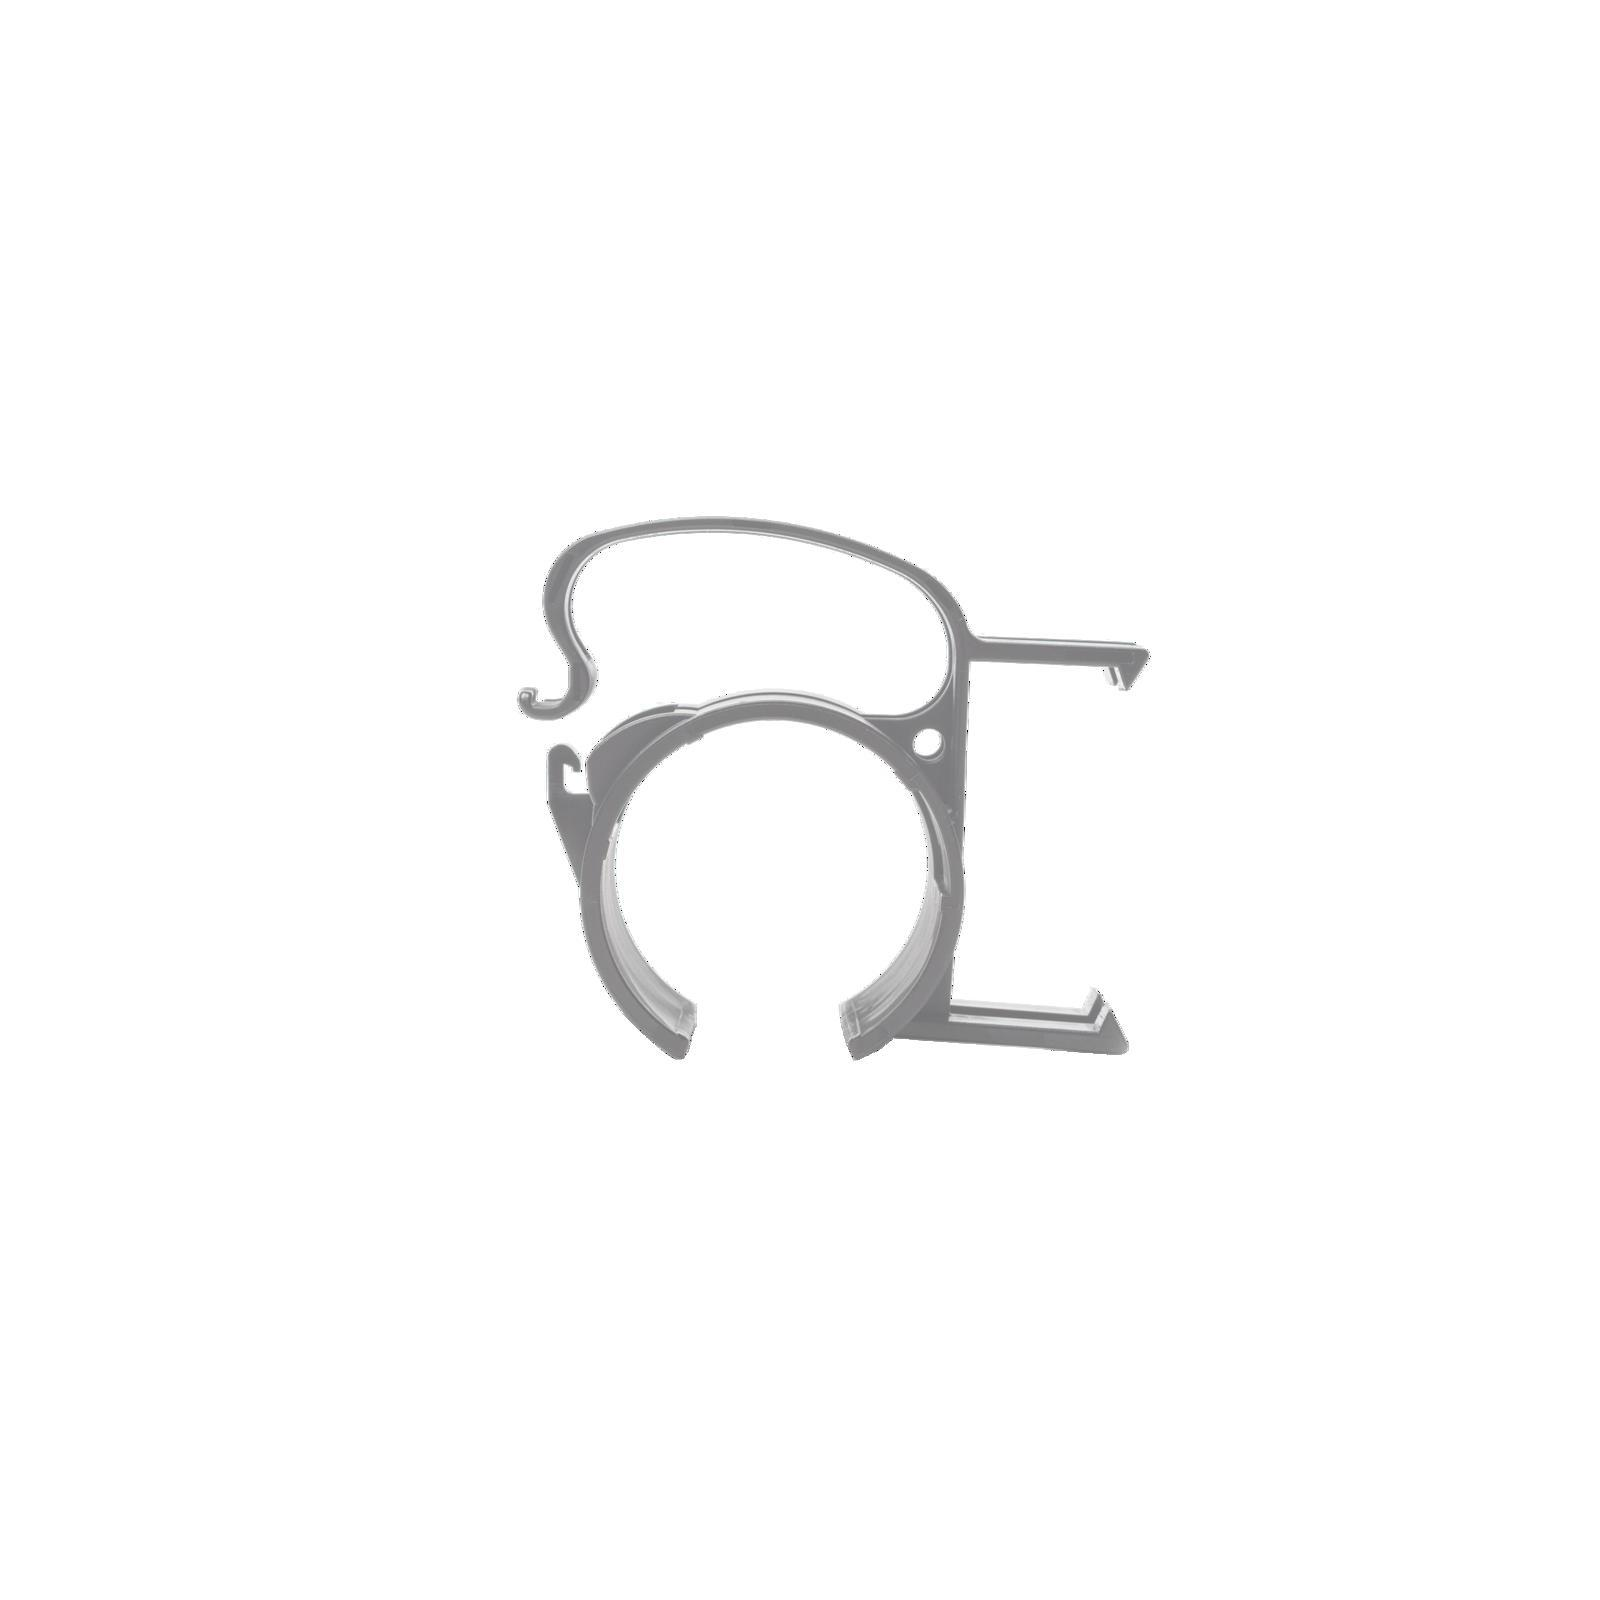 SNAP Mounting clamp silver 4x